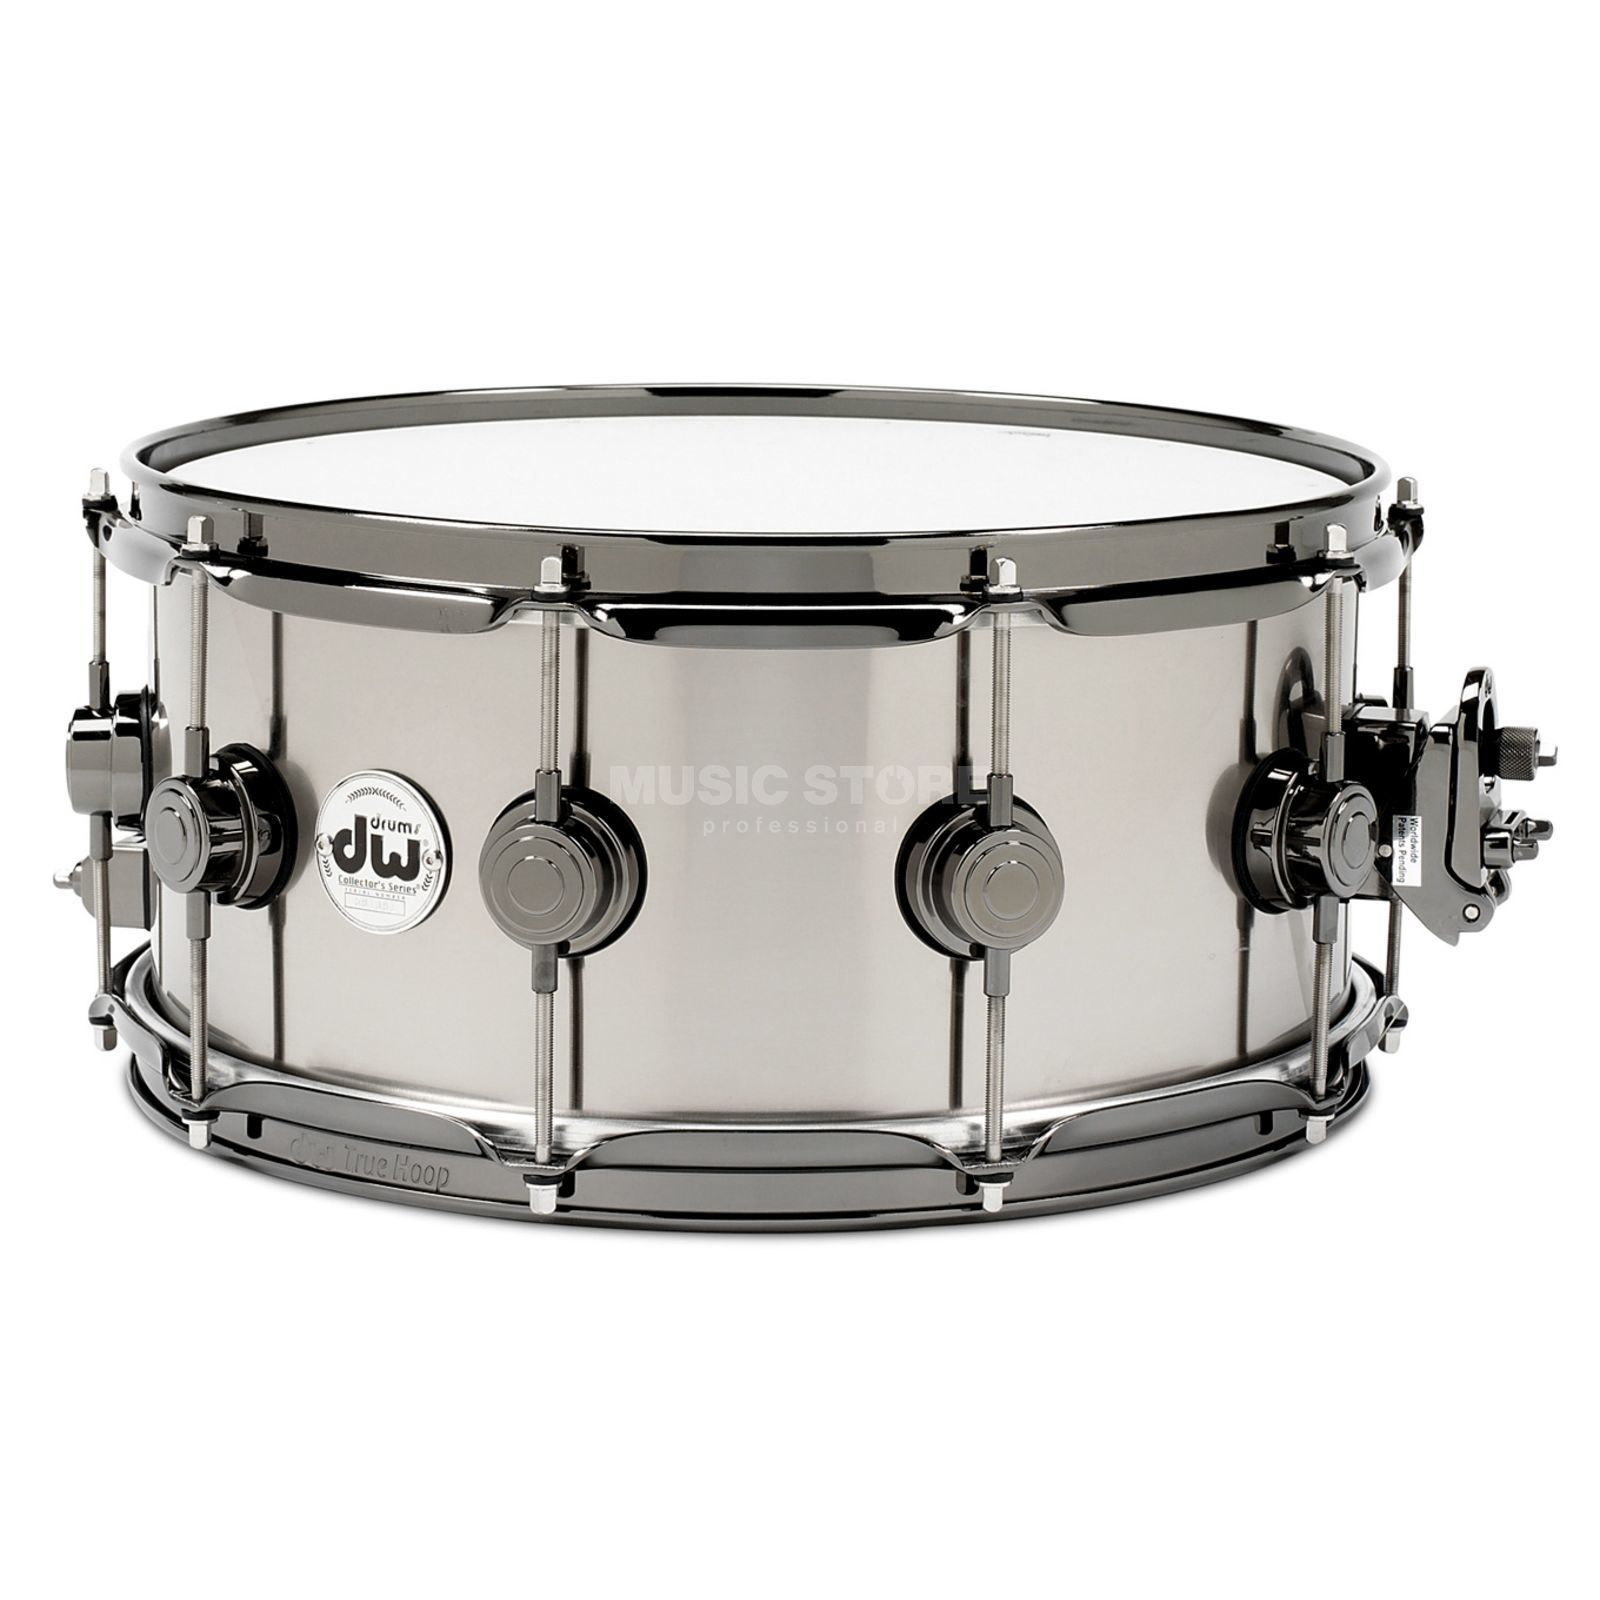 "Drum Workshop Collector´s Snare 14""x6,5"", Titanium Black Nickel Produktbild"